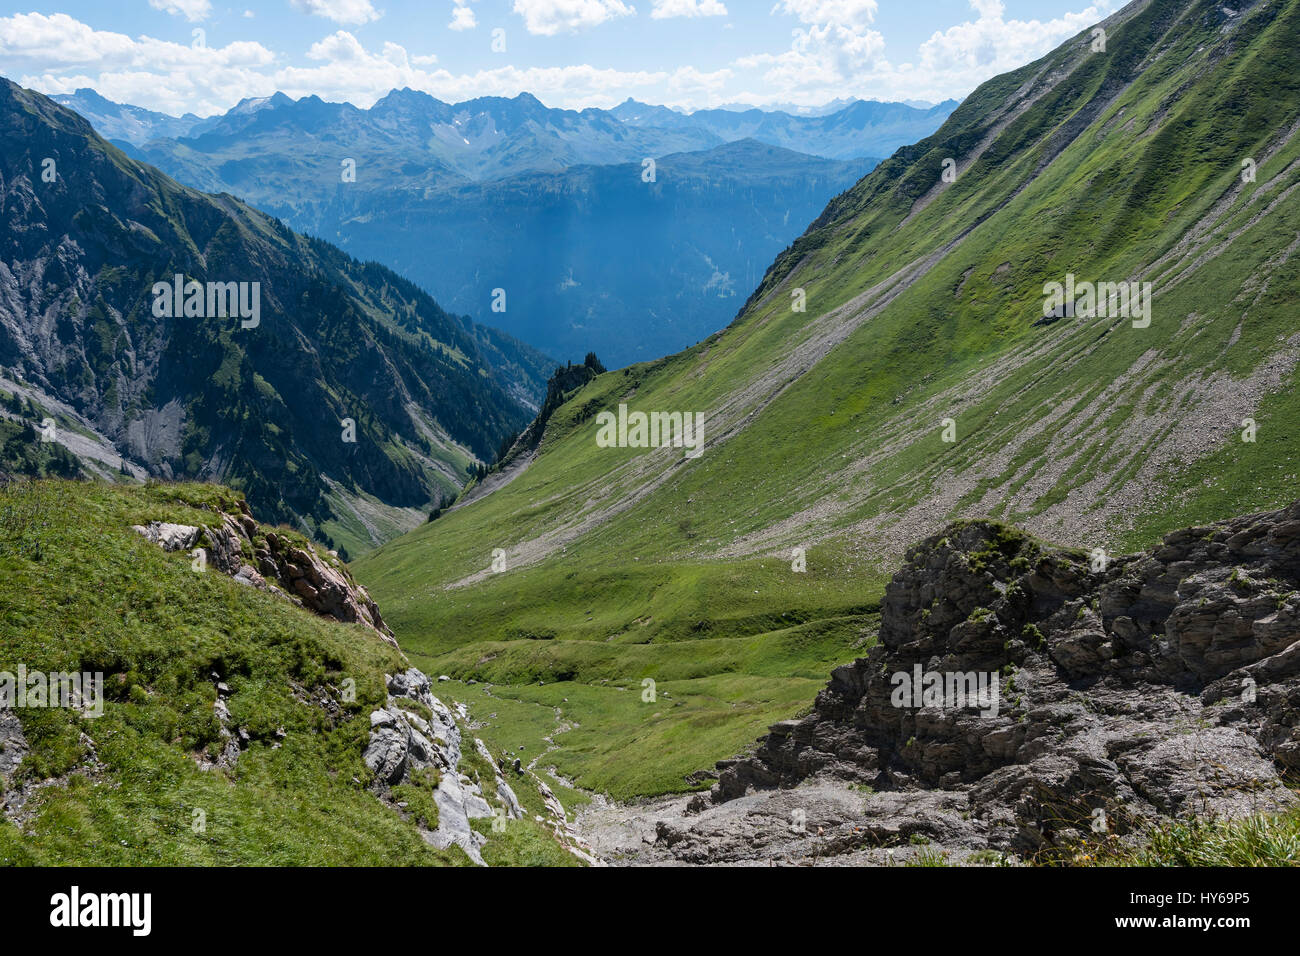 Karst landscape, Steinernes Meer and Rote Wand, Lechquellen Mountains, Vorarlberg, Austria Stock Photo